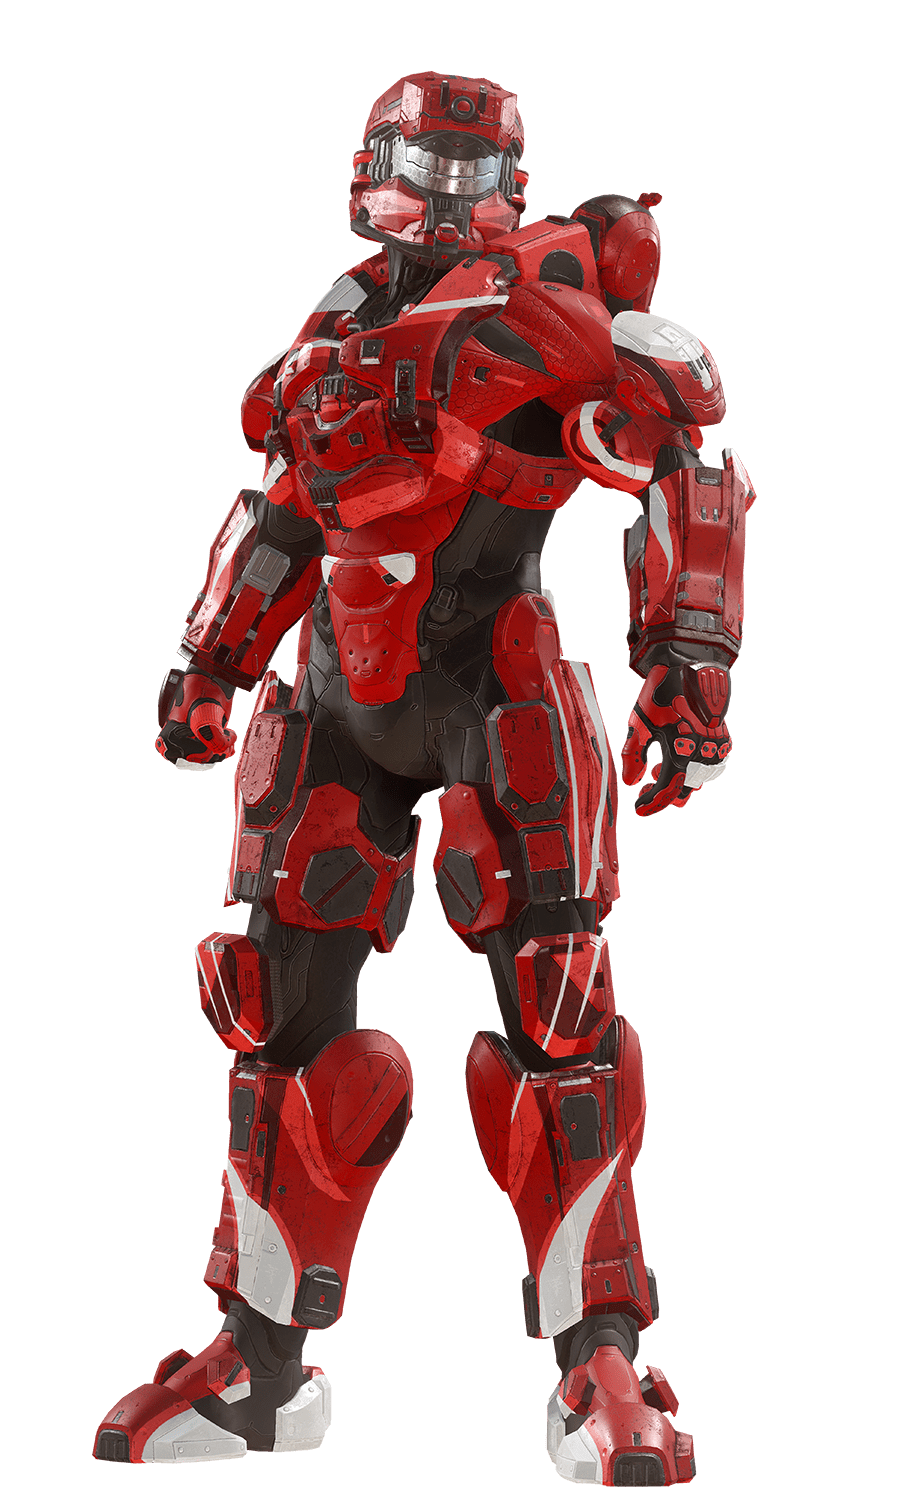 New Halo 5 Guardians Infinitys Armory Gallery Shows Off